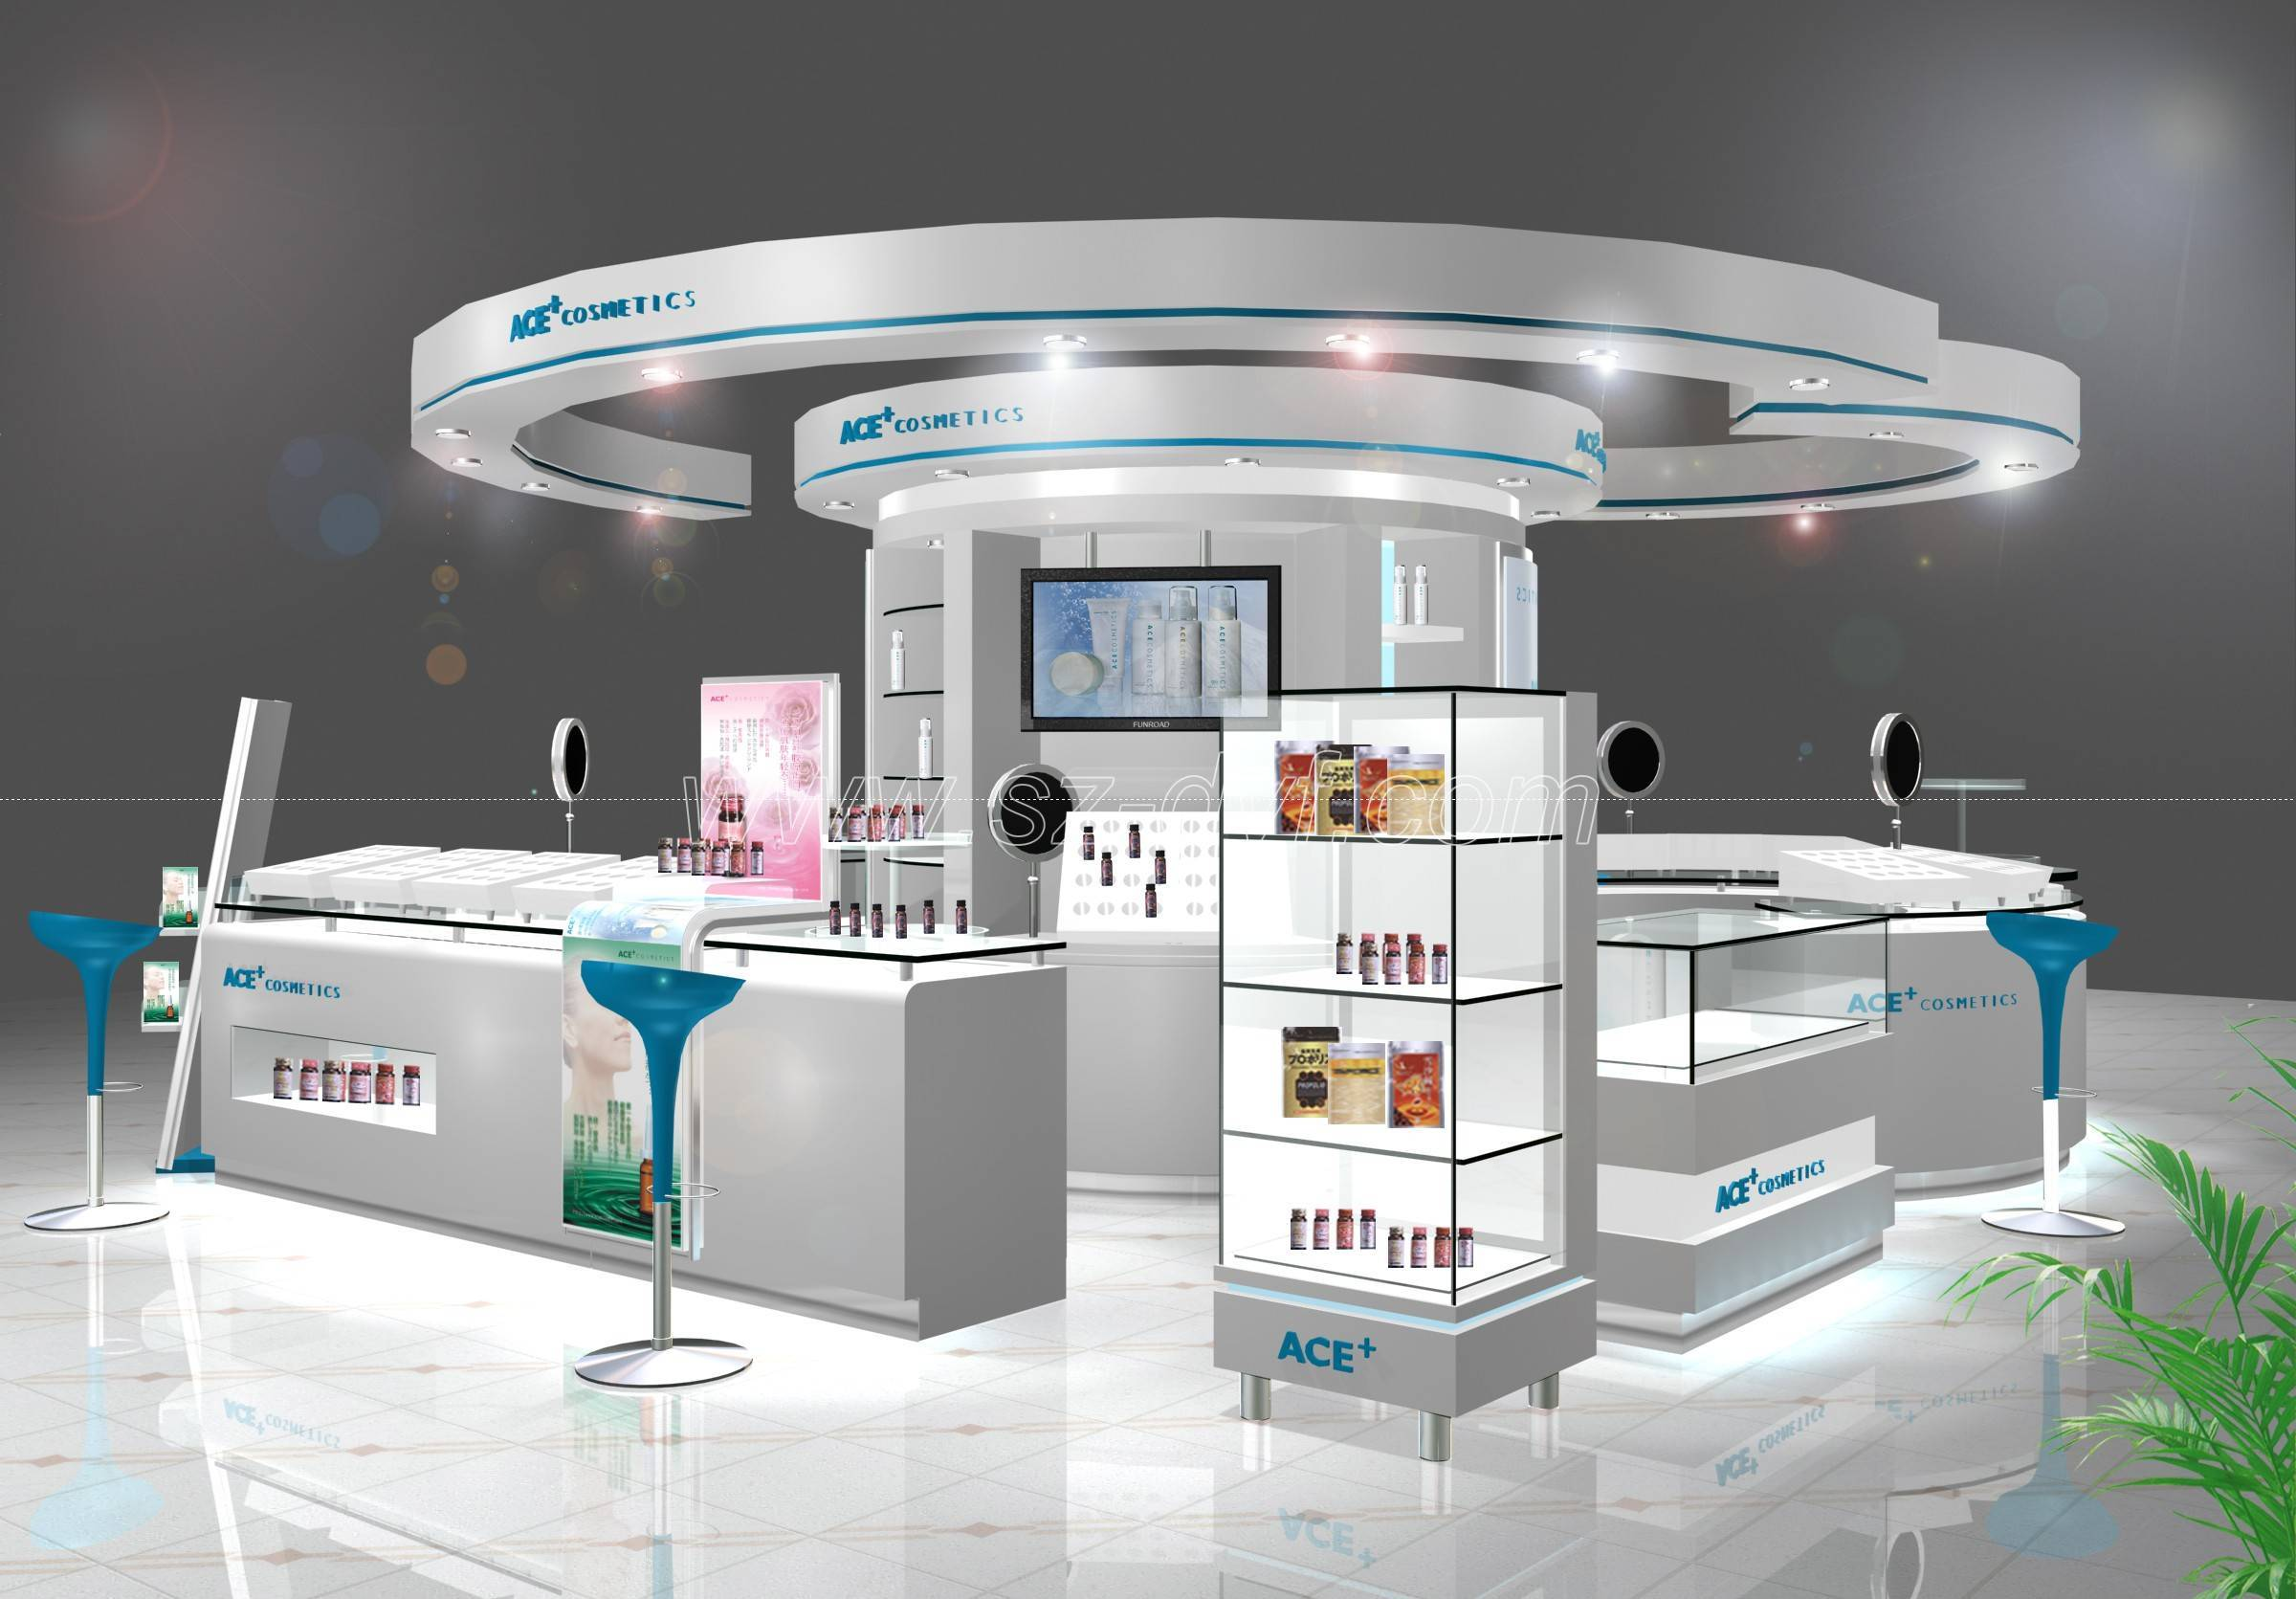 Exhibition Stands Product : Cosmetics display showcase kiosk stand shenzhen